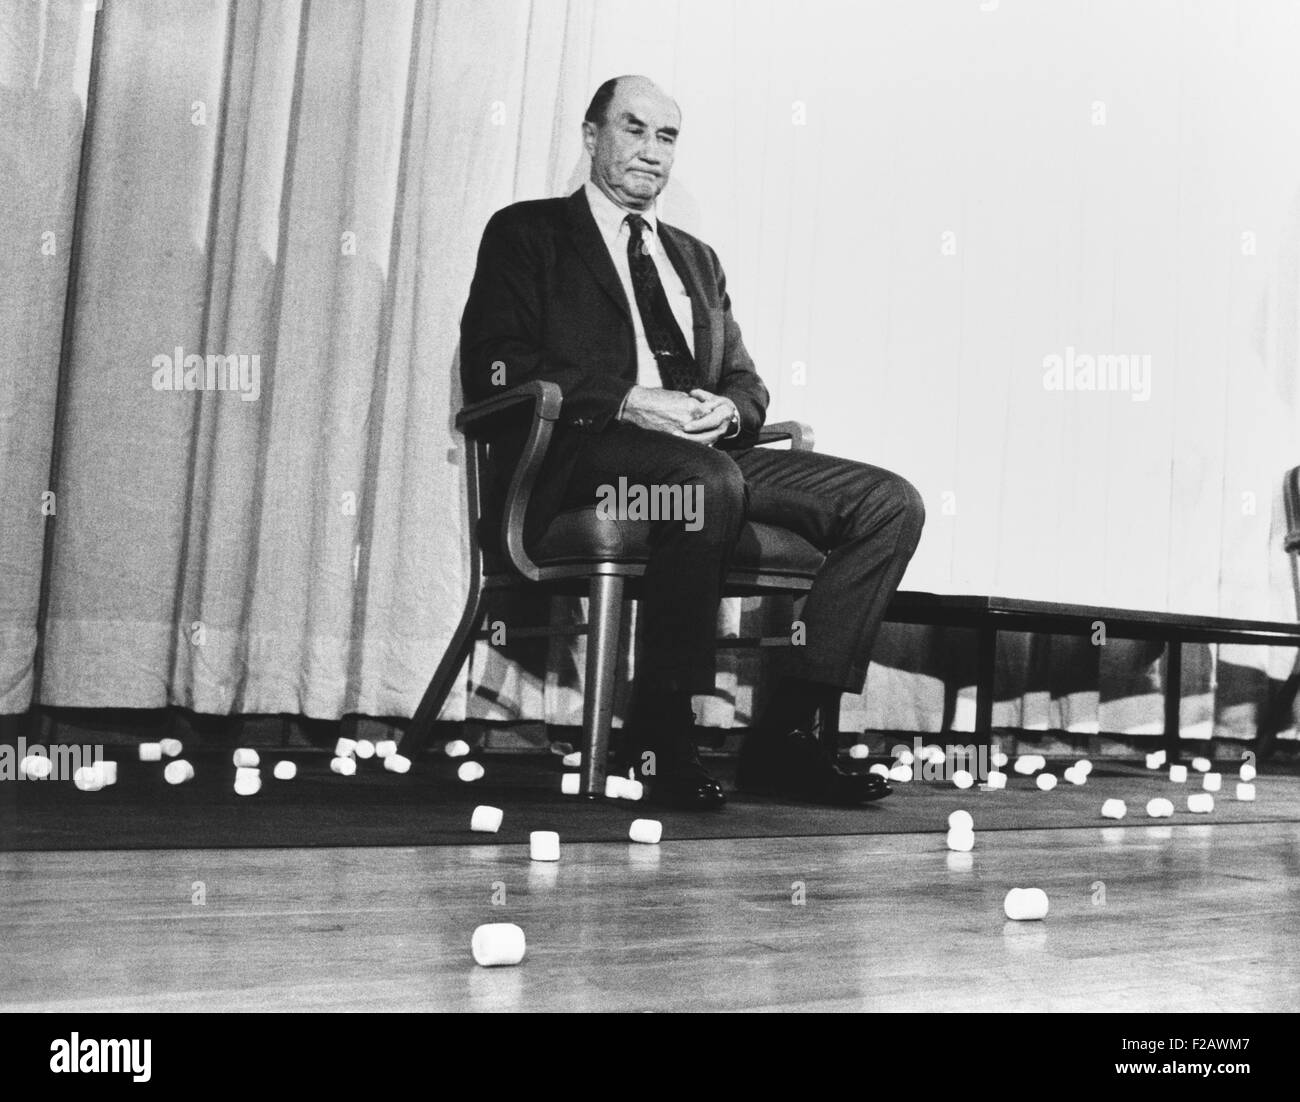 Sen. Strom Thurmond pelted with marshmallows after a speech at Carnegie-Mellon University. Jan. 1970. The student - Stock Image